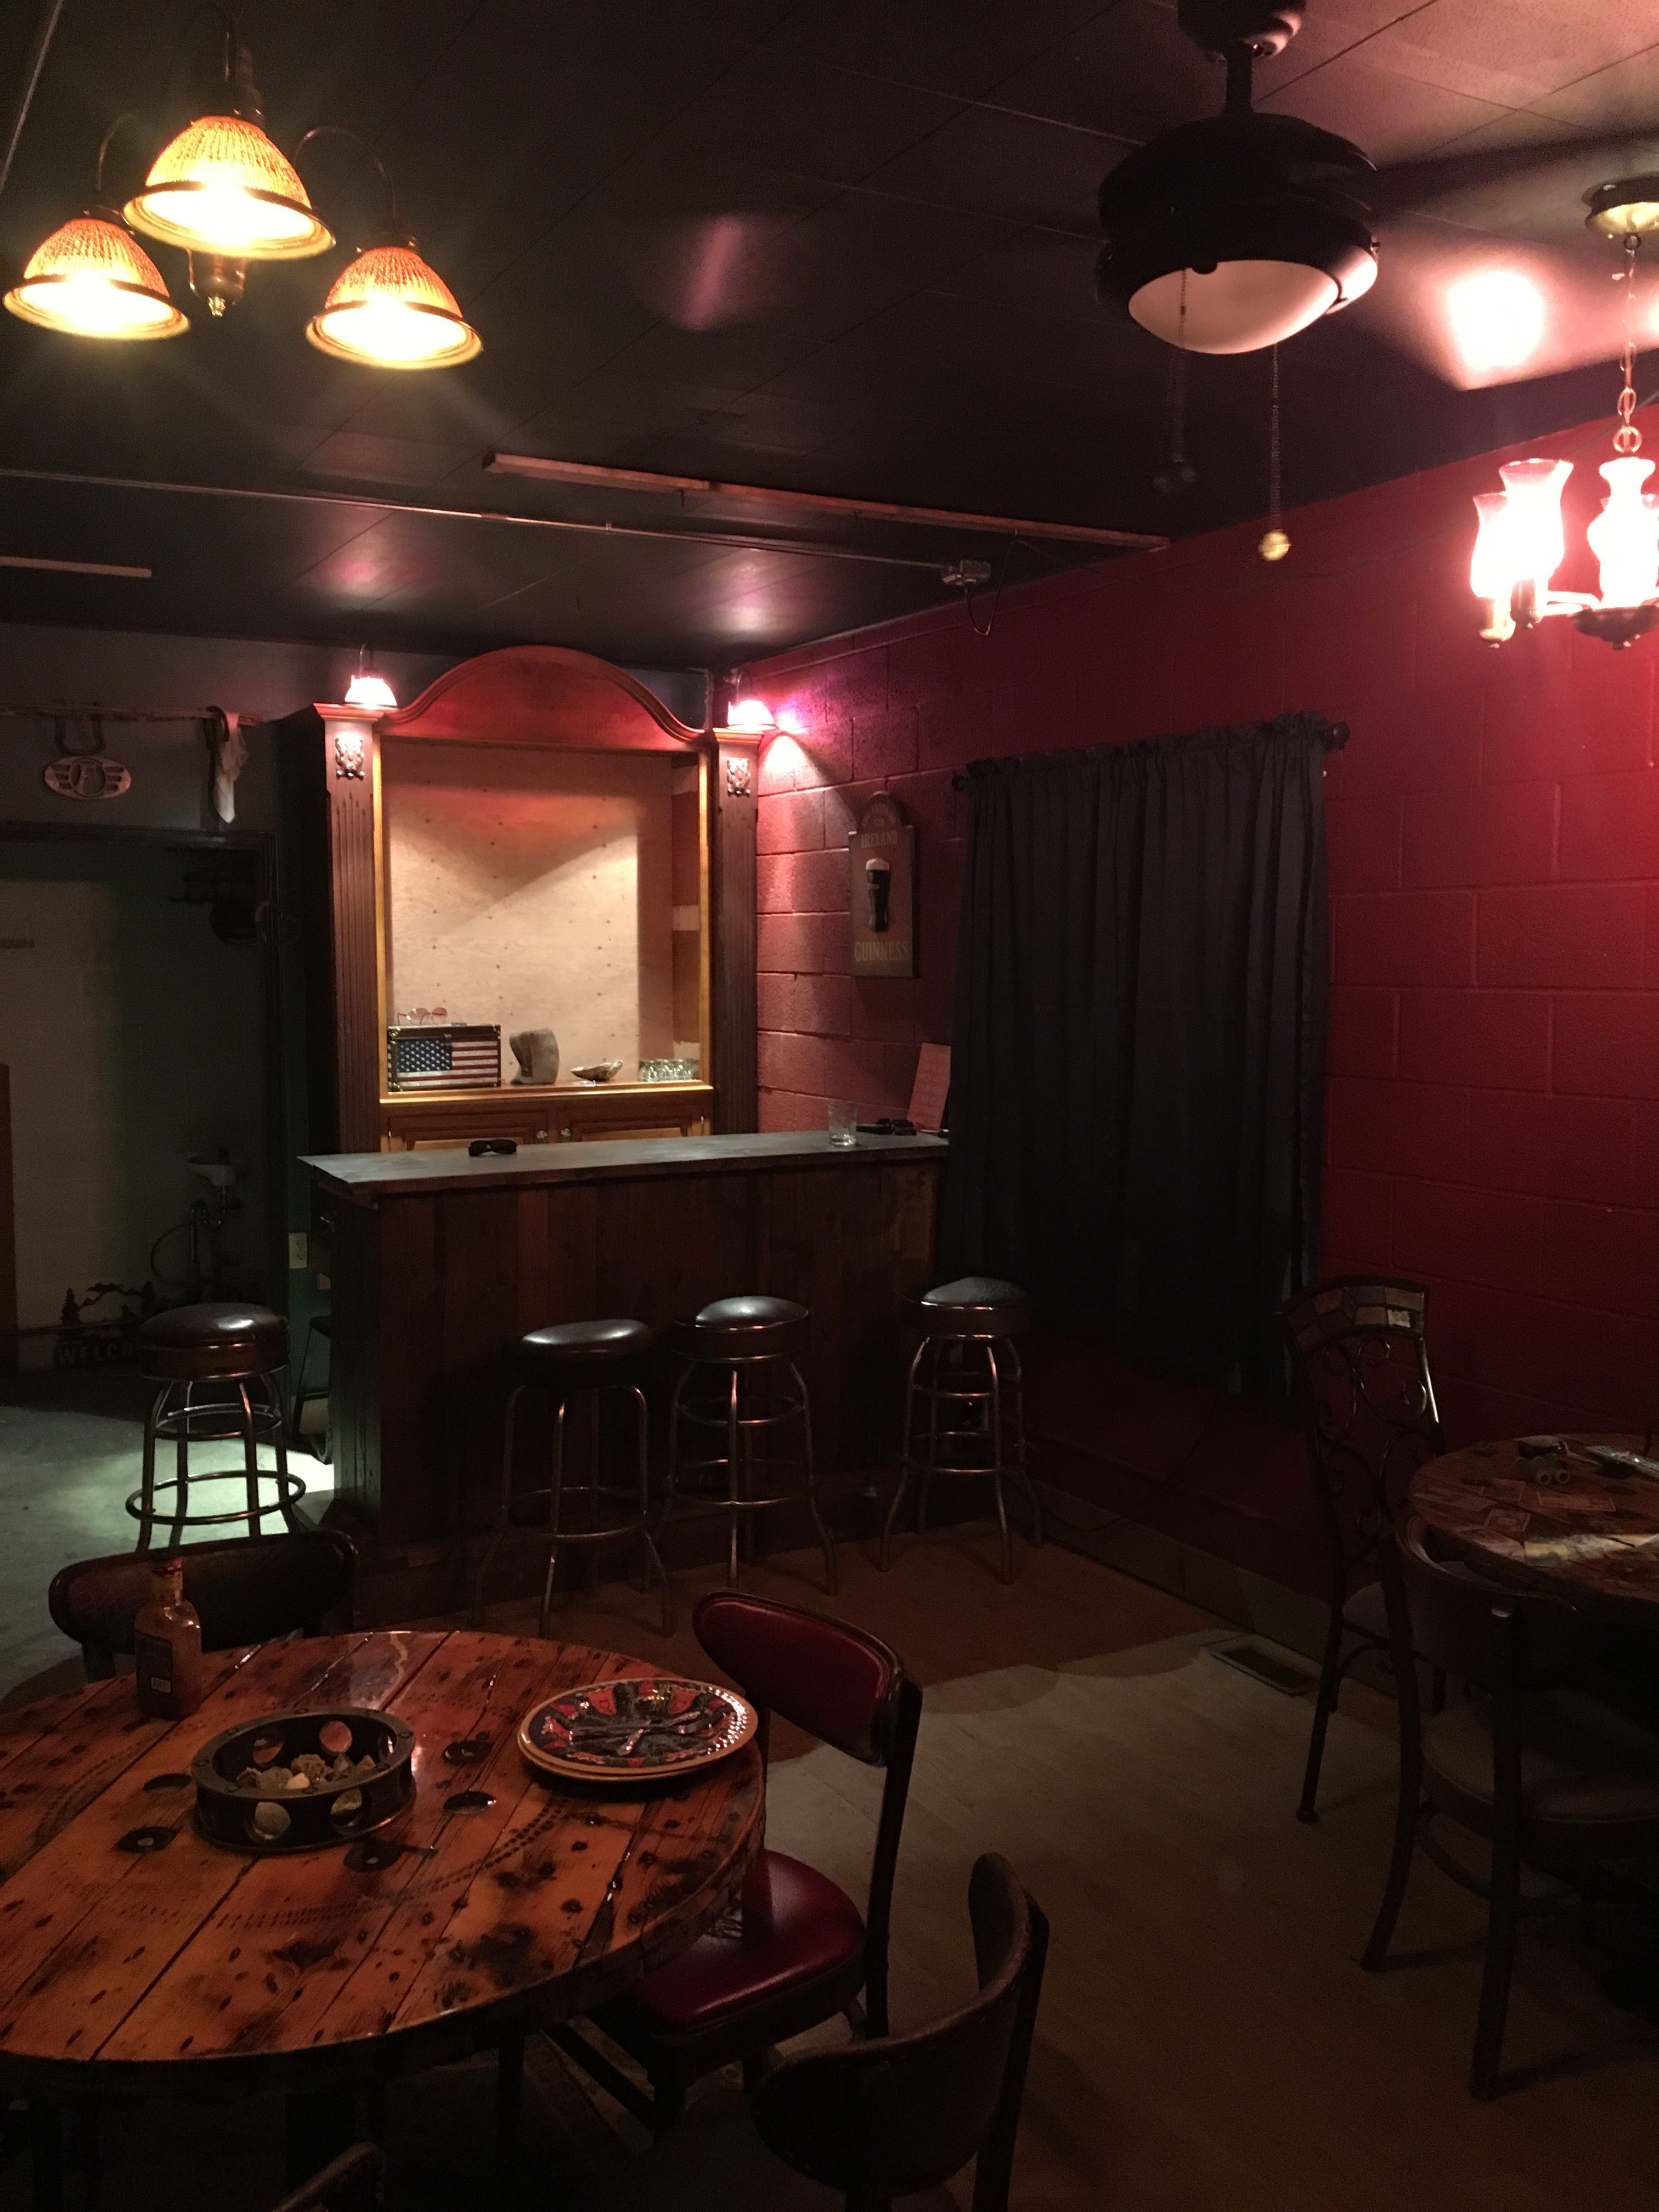 Green eyed Gypsy Saloon #gypsysetup Saloon in Fort Bridger and home to the greatest tarot card reader. Good Beer, better Whiskey and drinkable water.